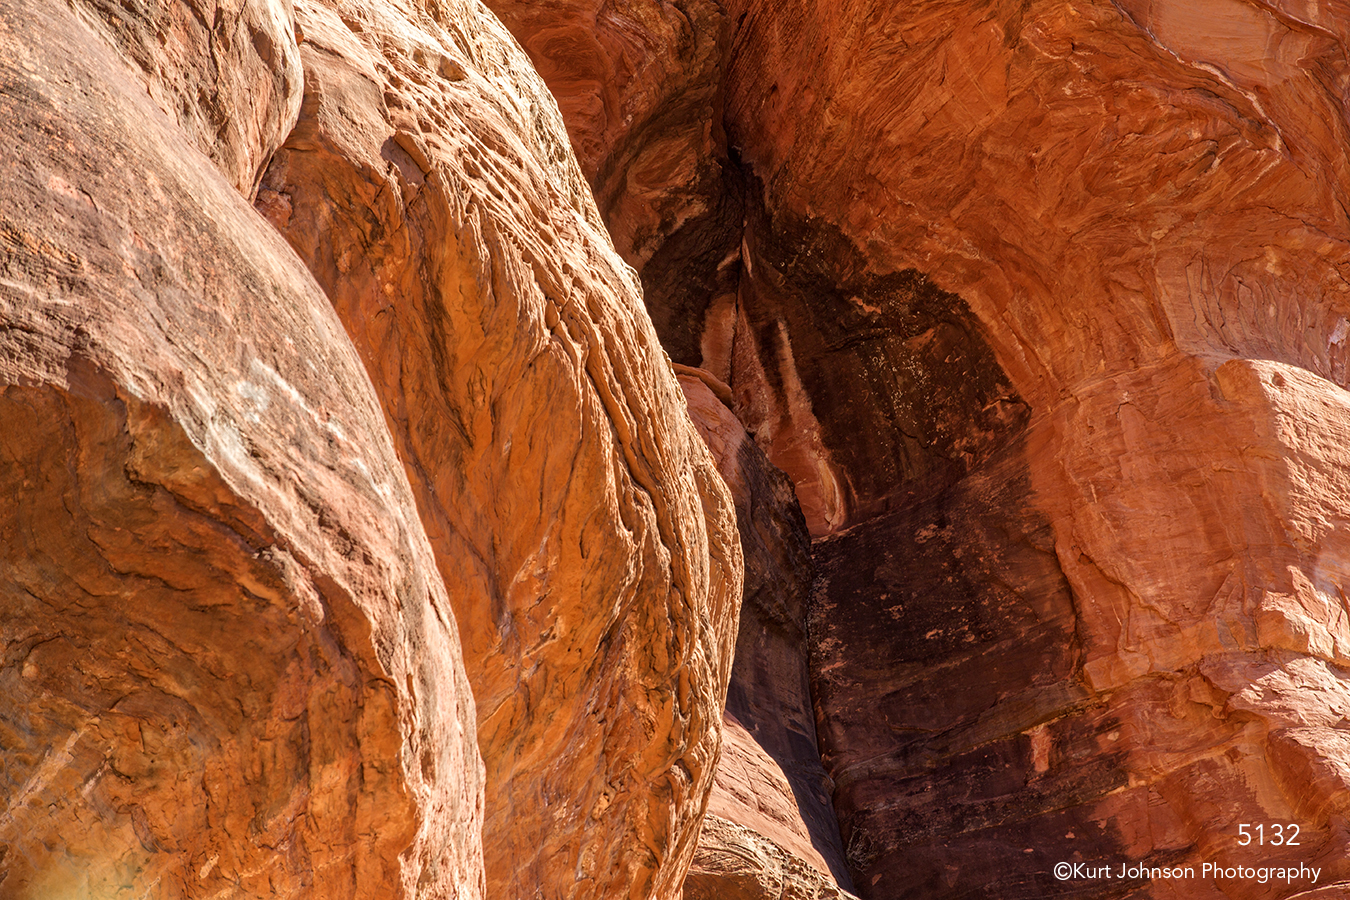 landscape rocks red orange texture abstract